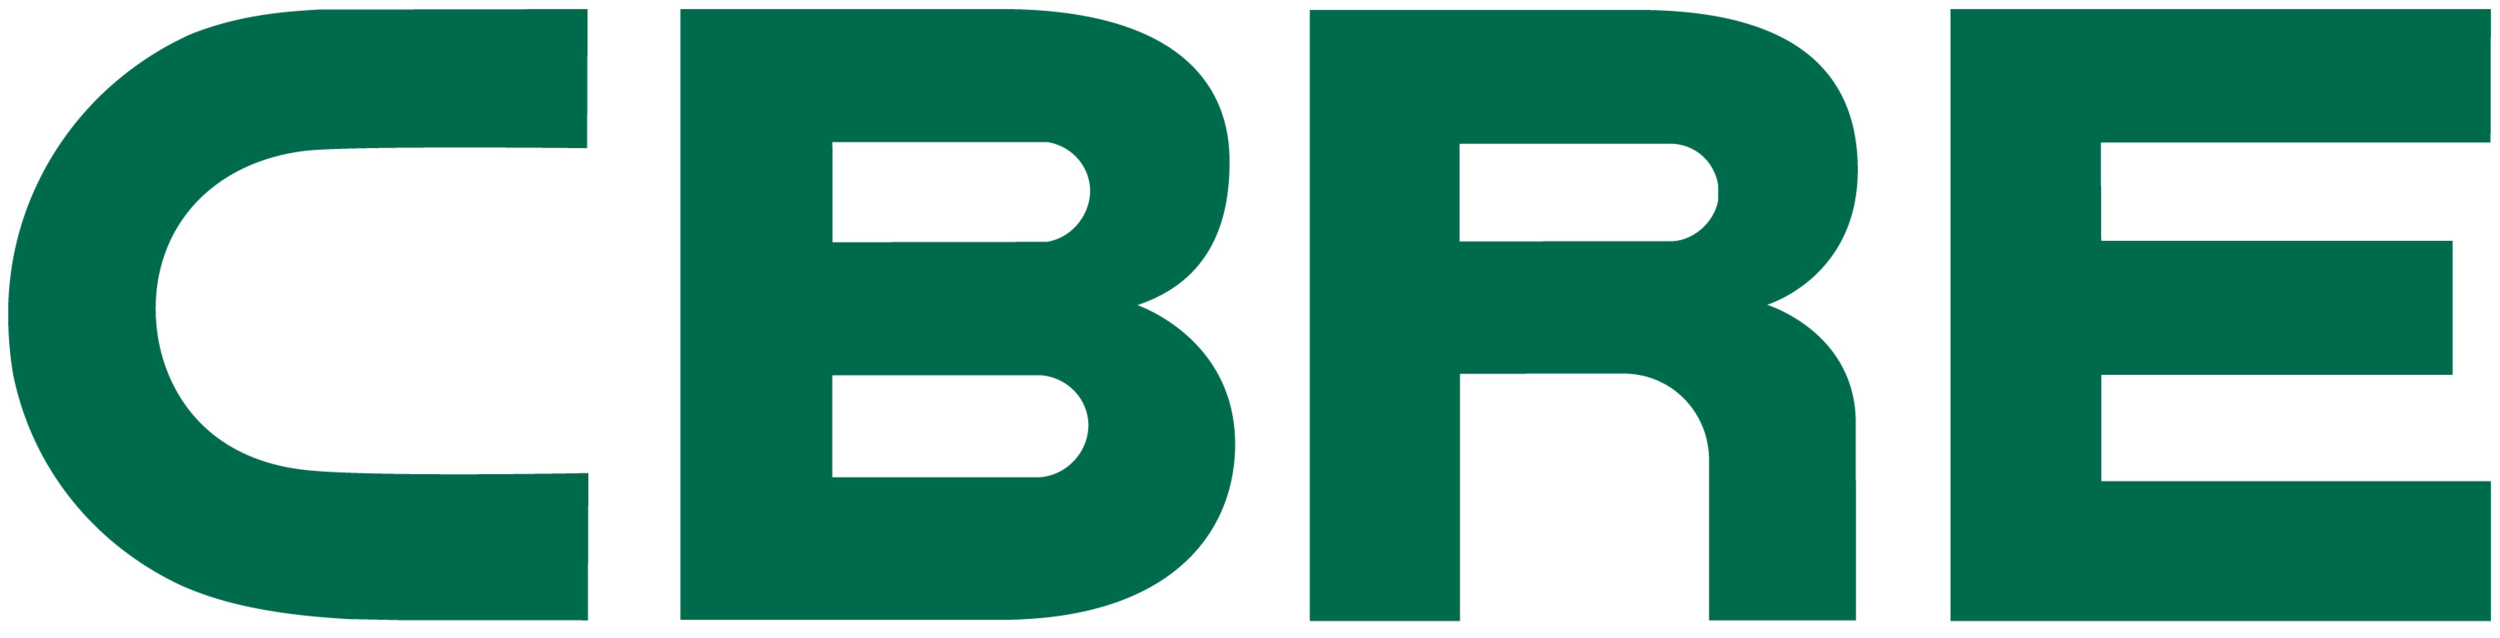 CBRE_PNG.png